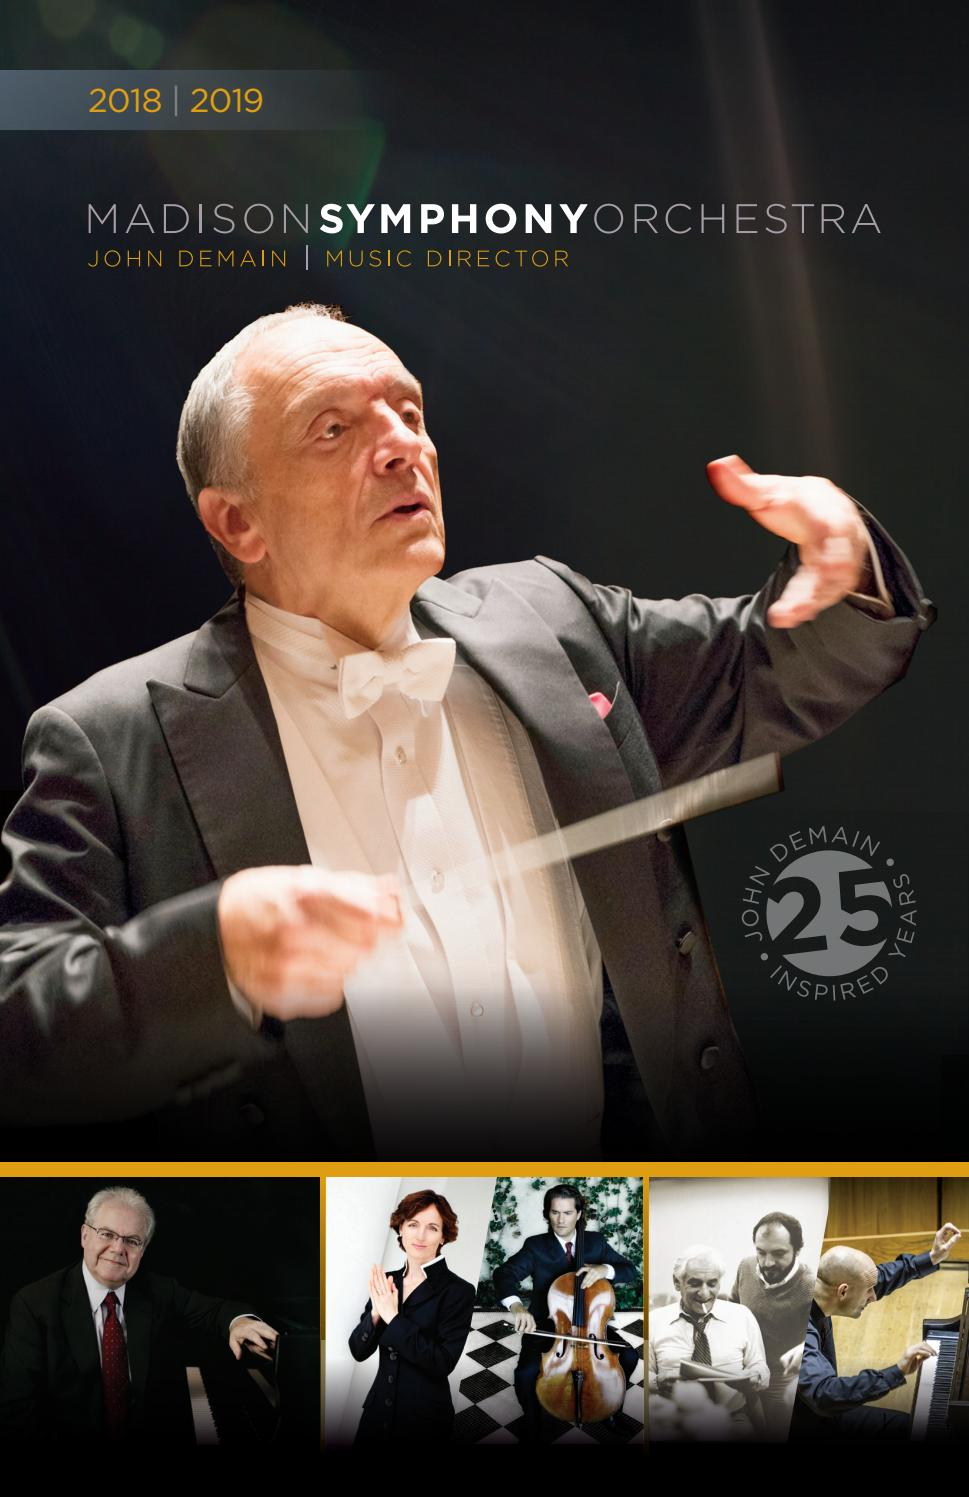 Mso Program Book Sept Oct Nov 2018 By Madison Symphony Orchestra